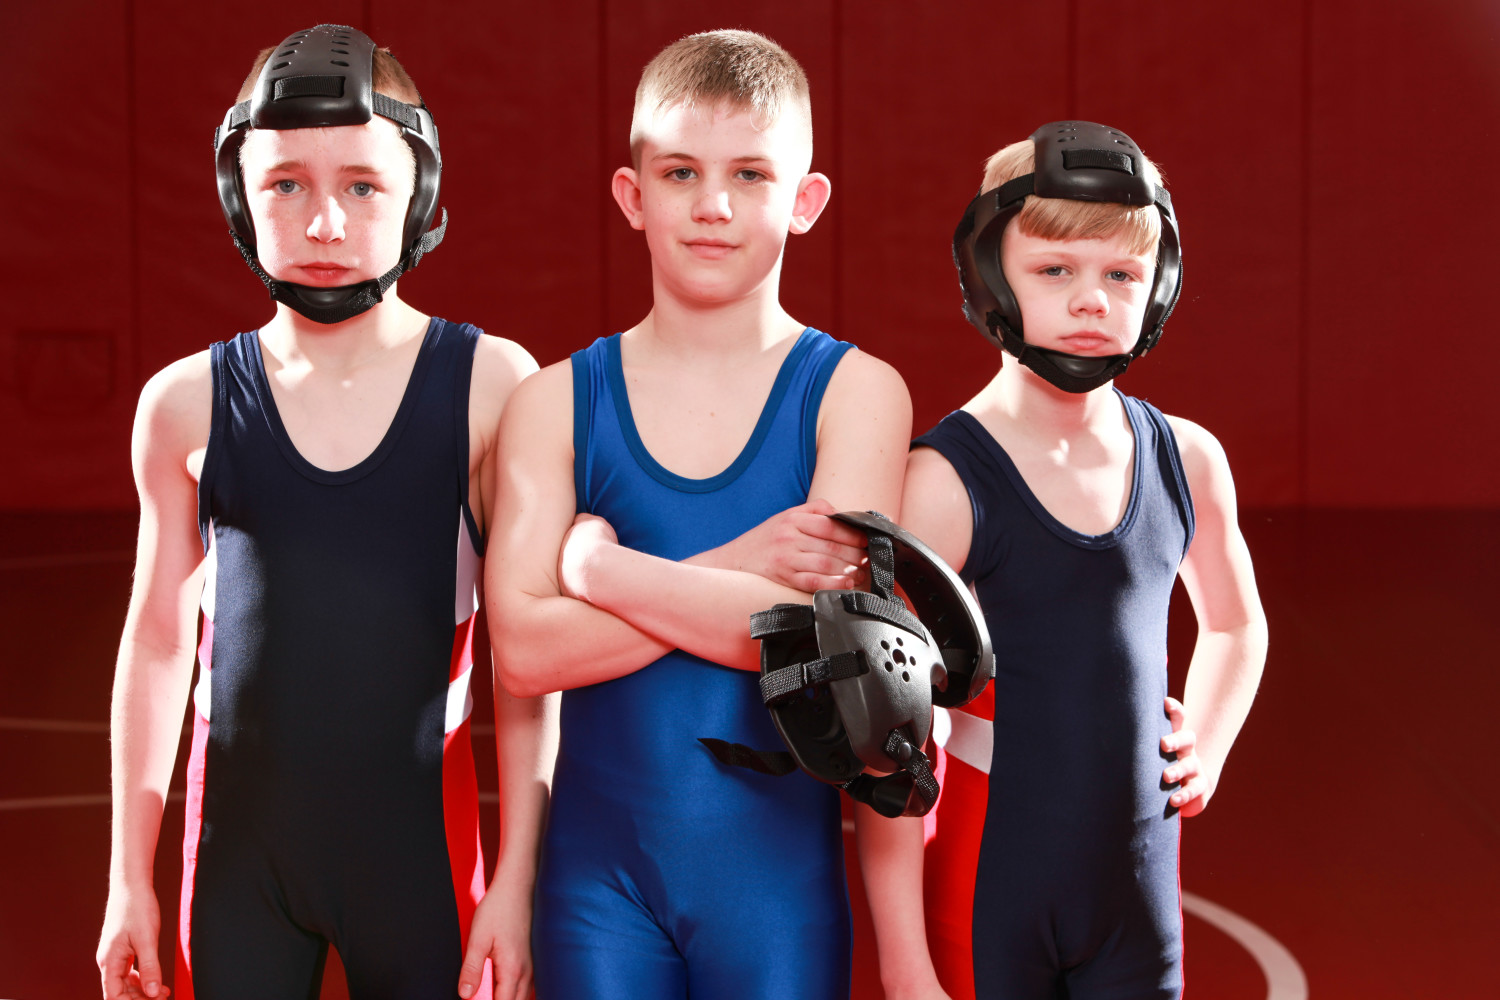 Youth Wrestling Club